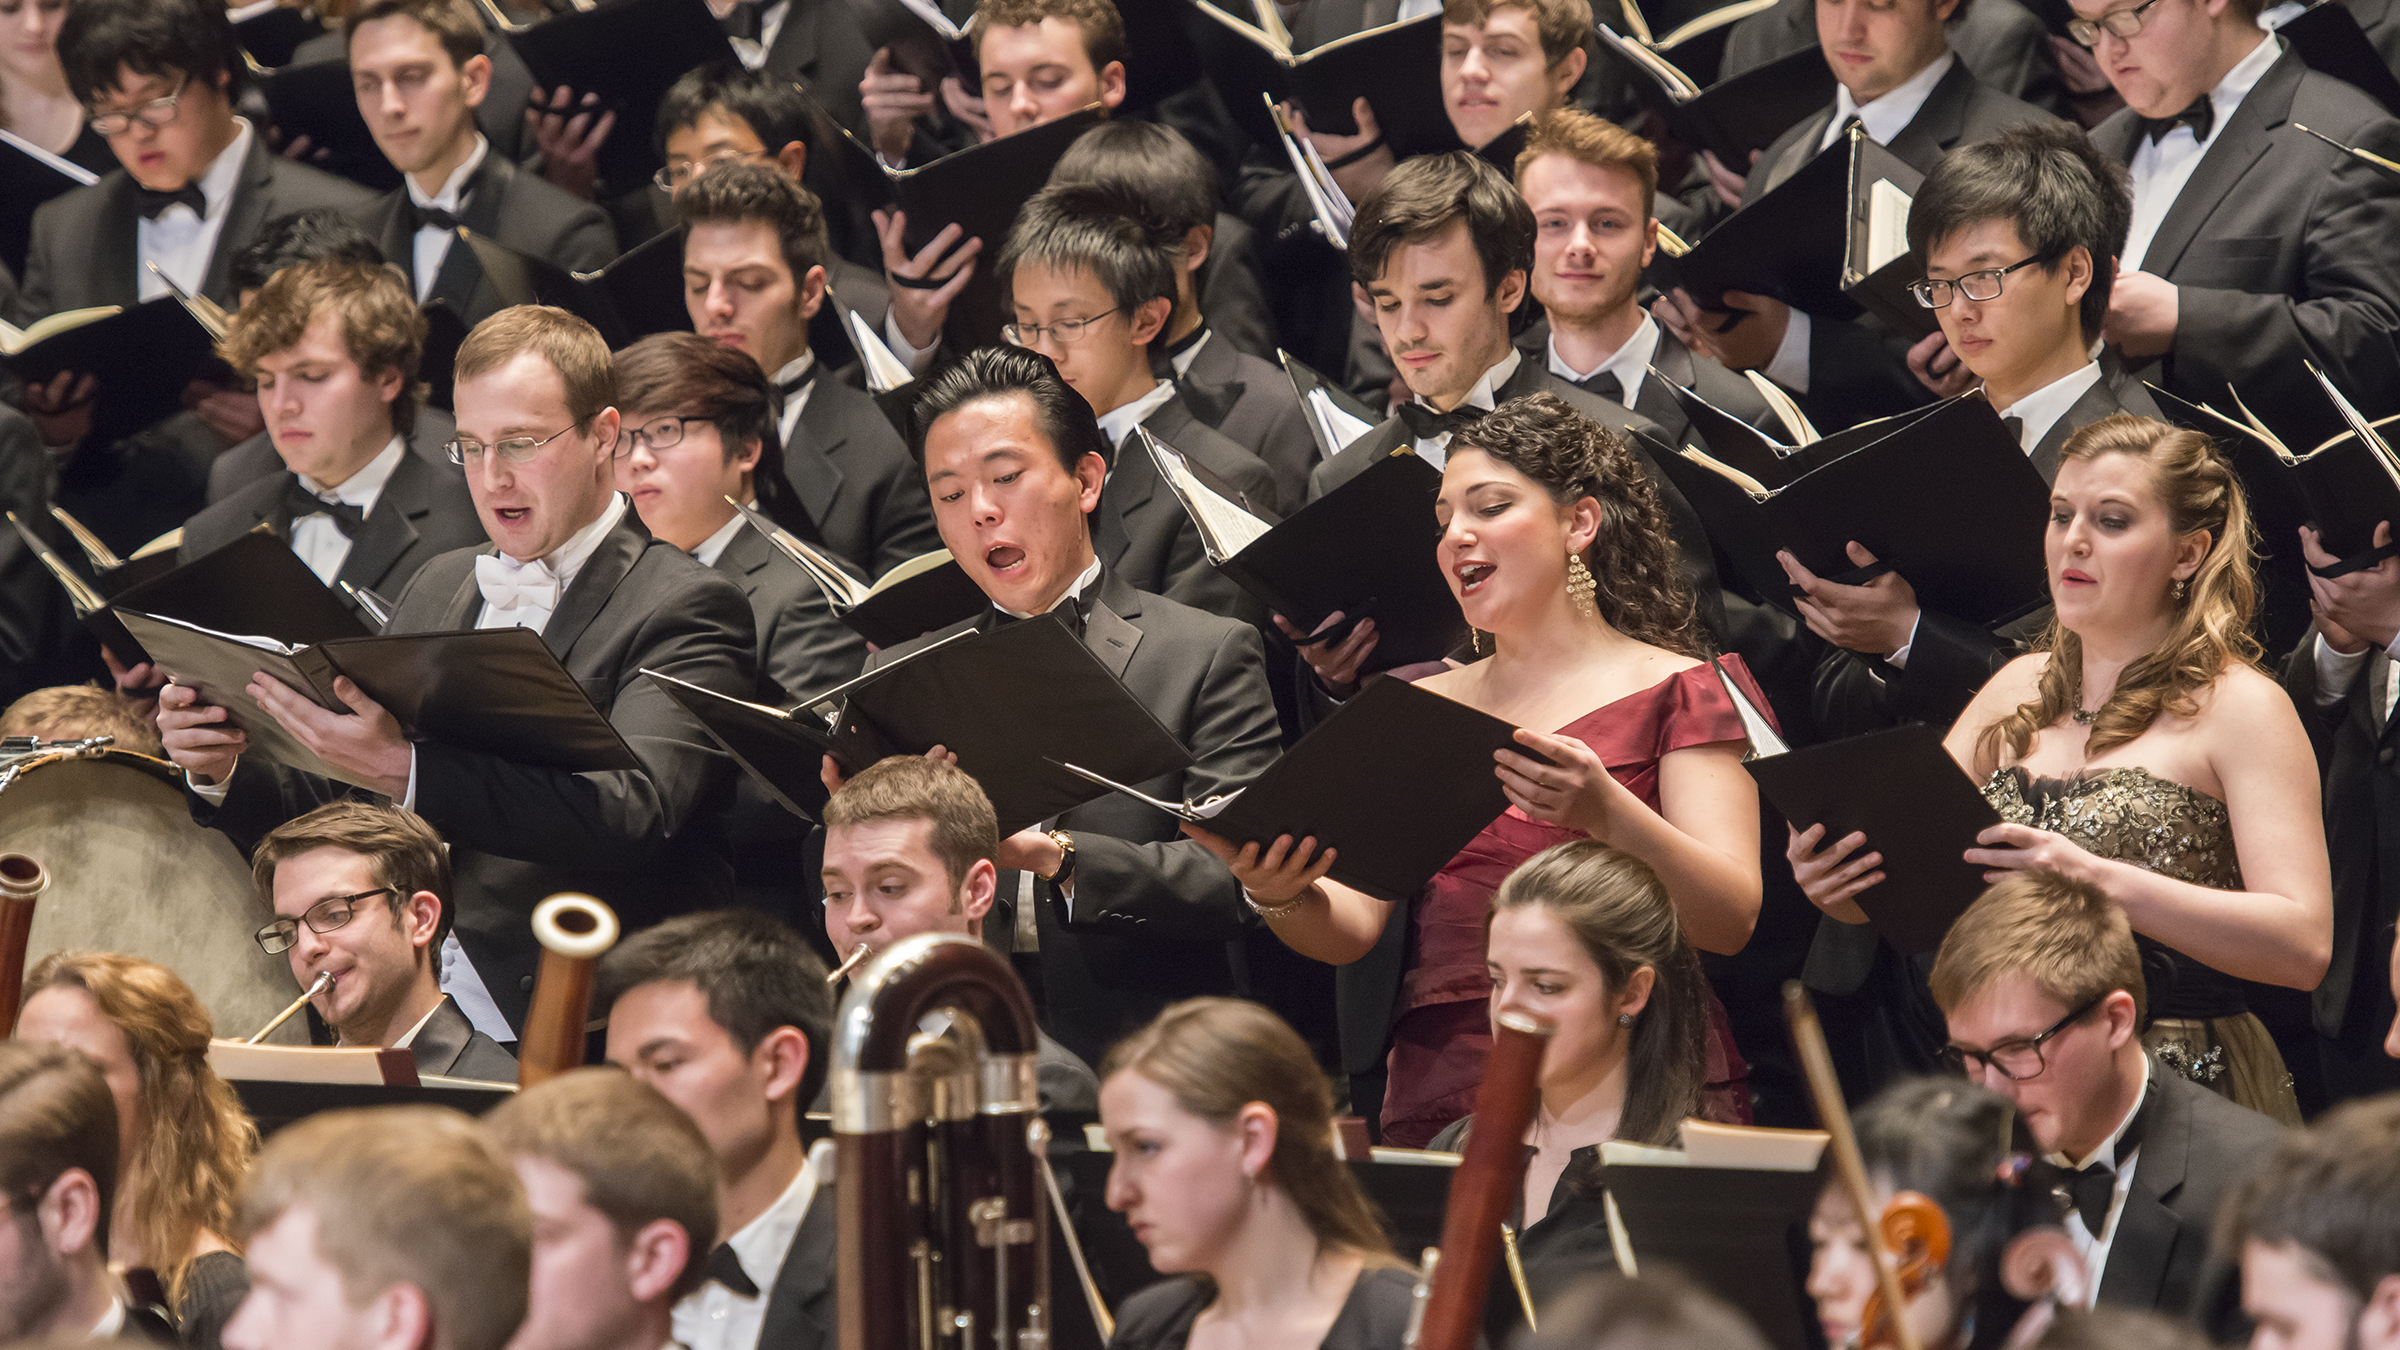 Soloists, chorus and orchestra perform Beethoven's Ninth